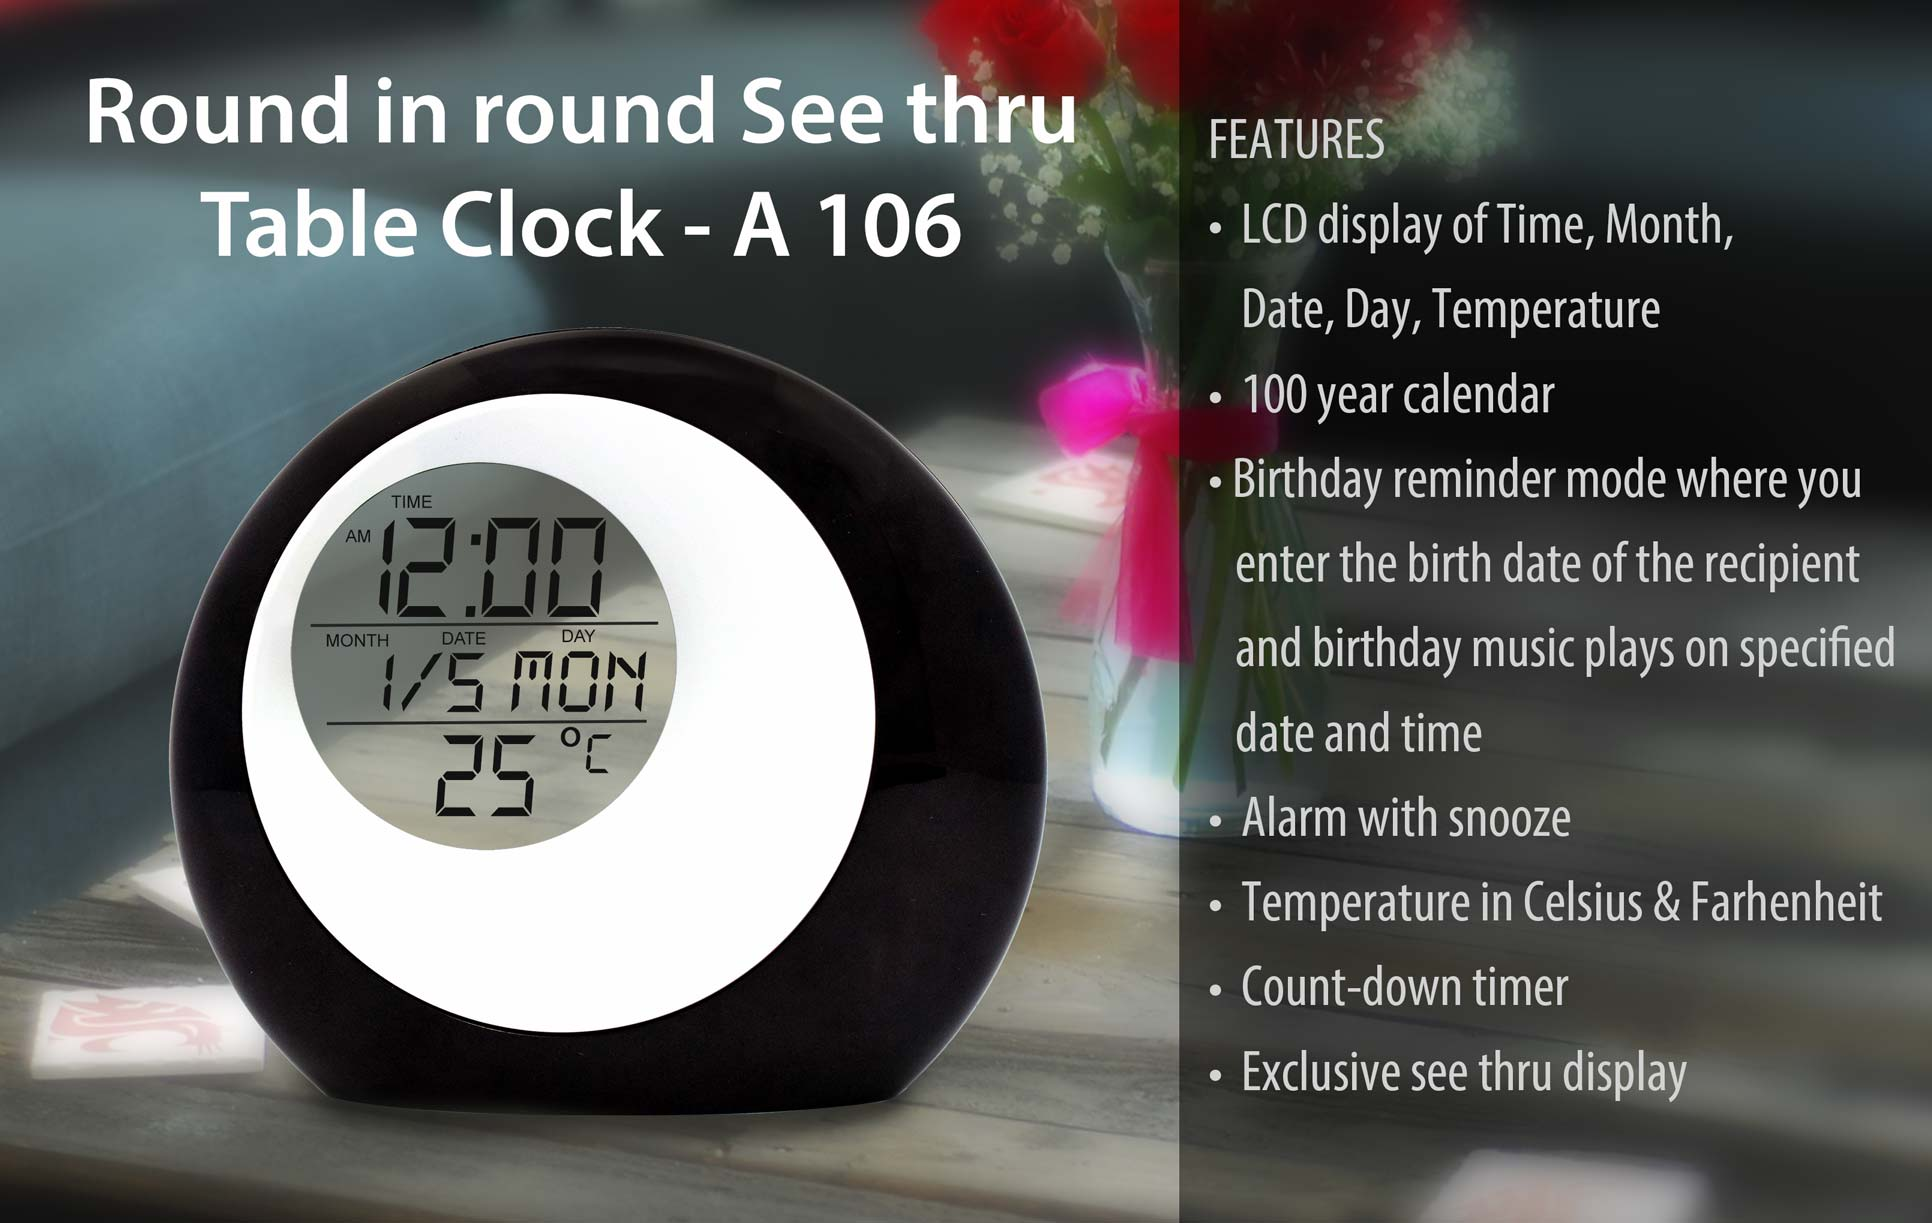 A106 - ROUND IN ROUND SEE THRU TABLE CLOCK